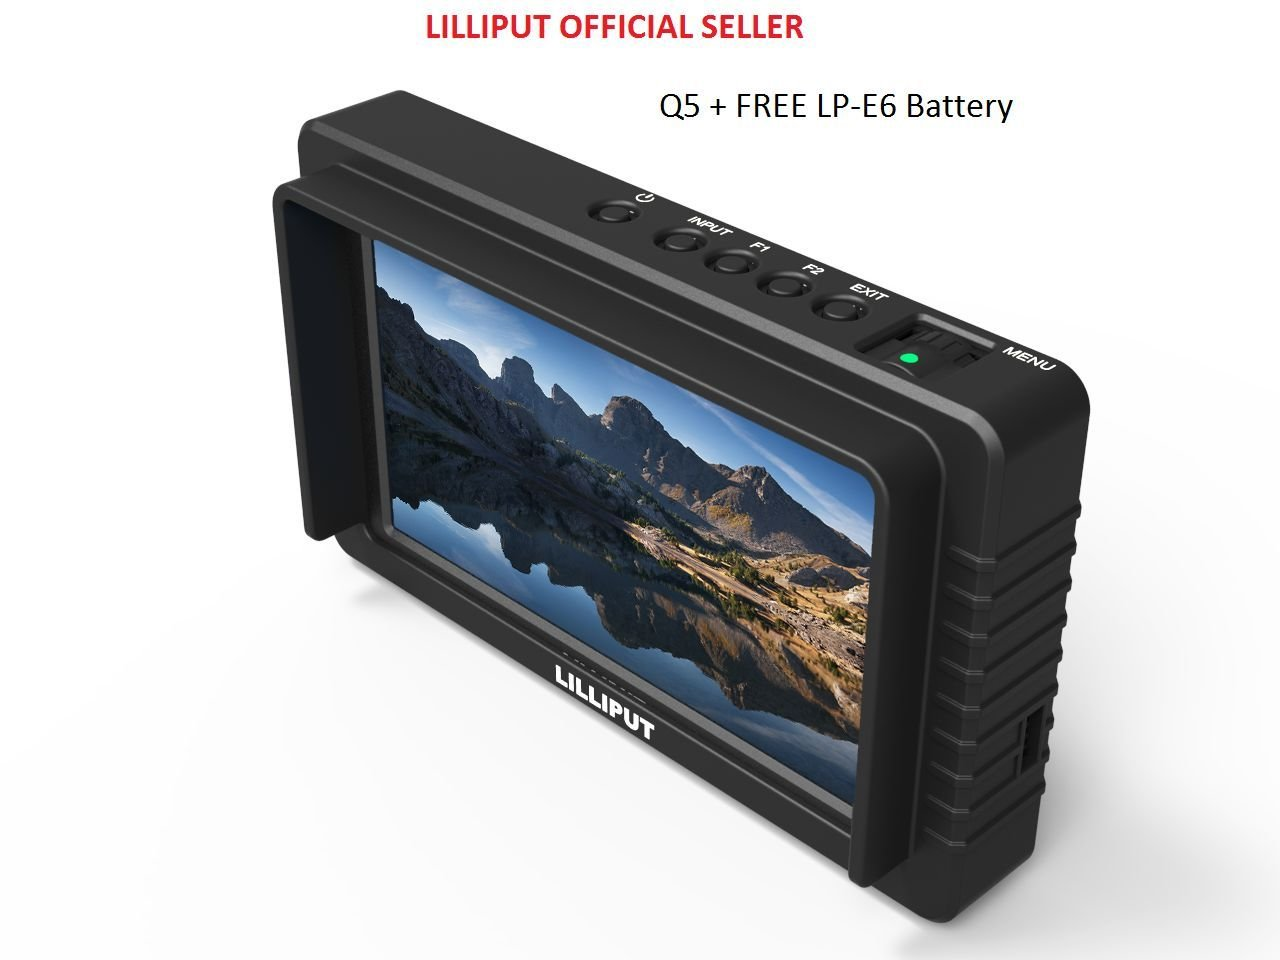 LILLIPUT exclusively Black housing version Q5 5.5'' 1920x1080 Full HD Resolution SDI and HDMI Cross Conversion+ LP-E6 battery by Lilliput